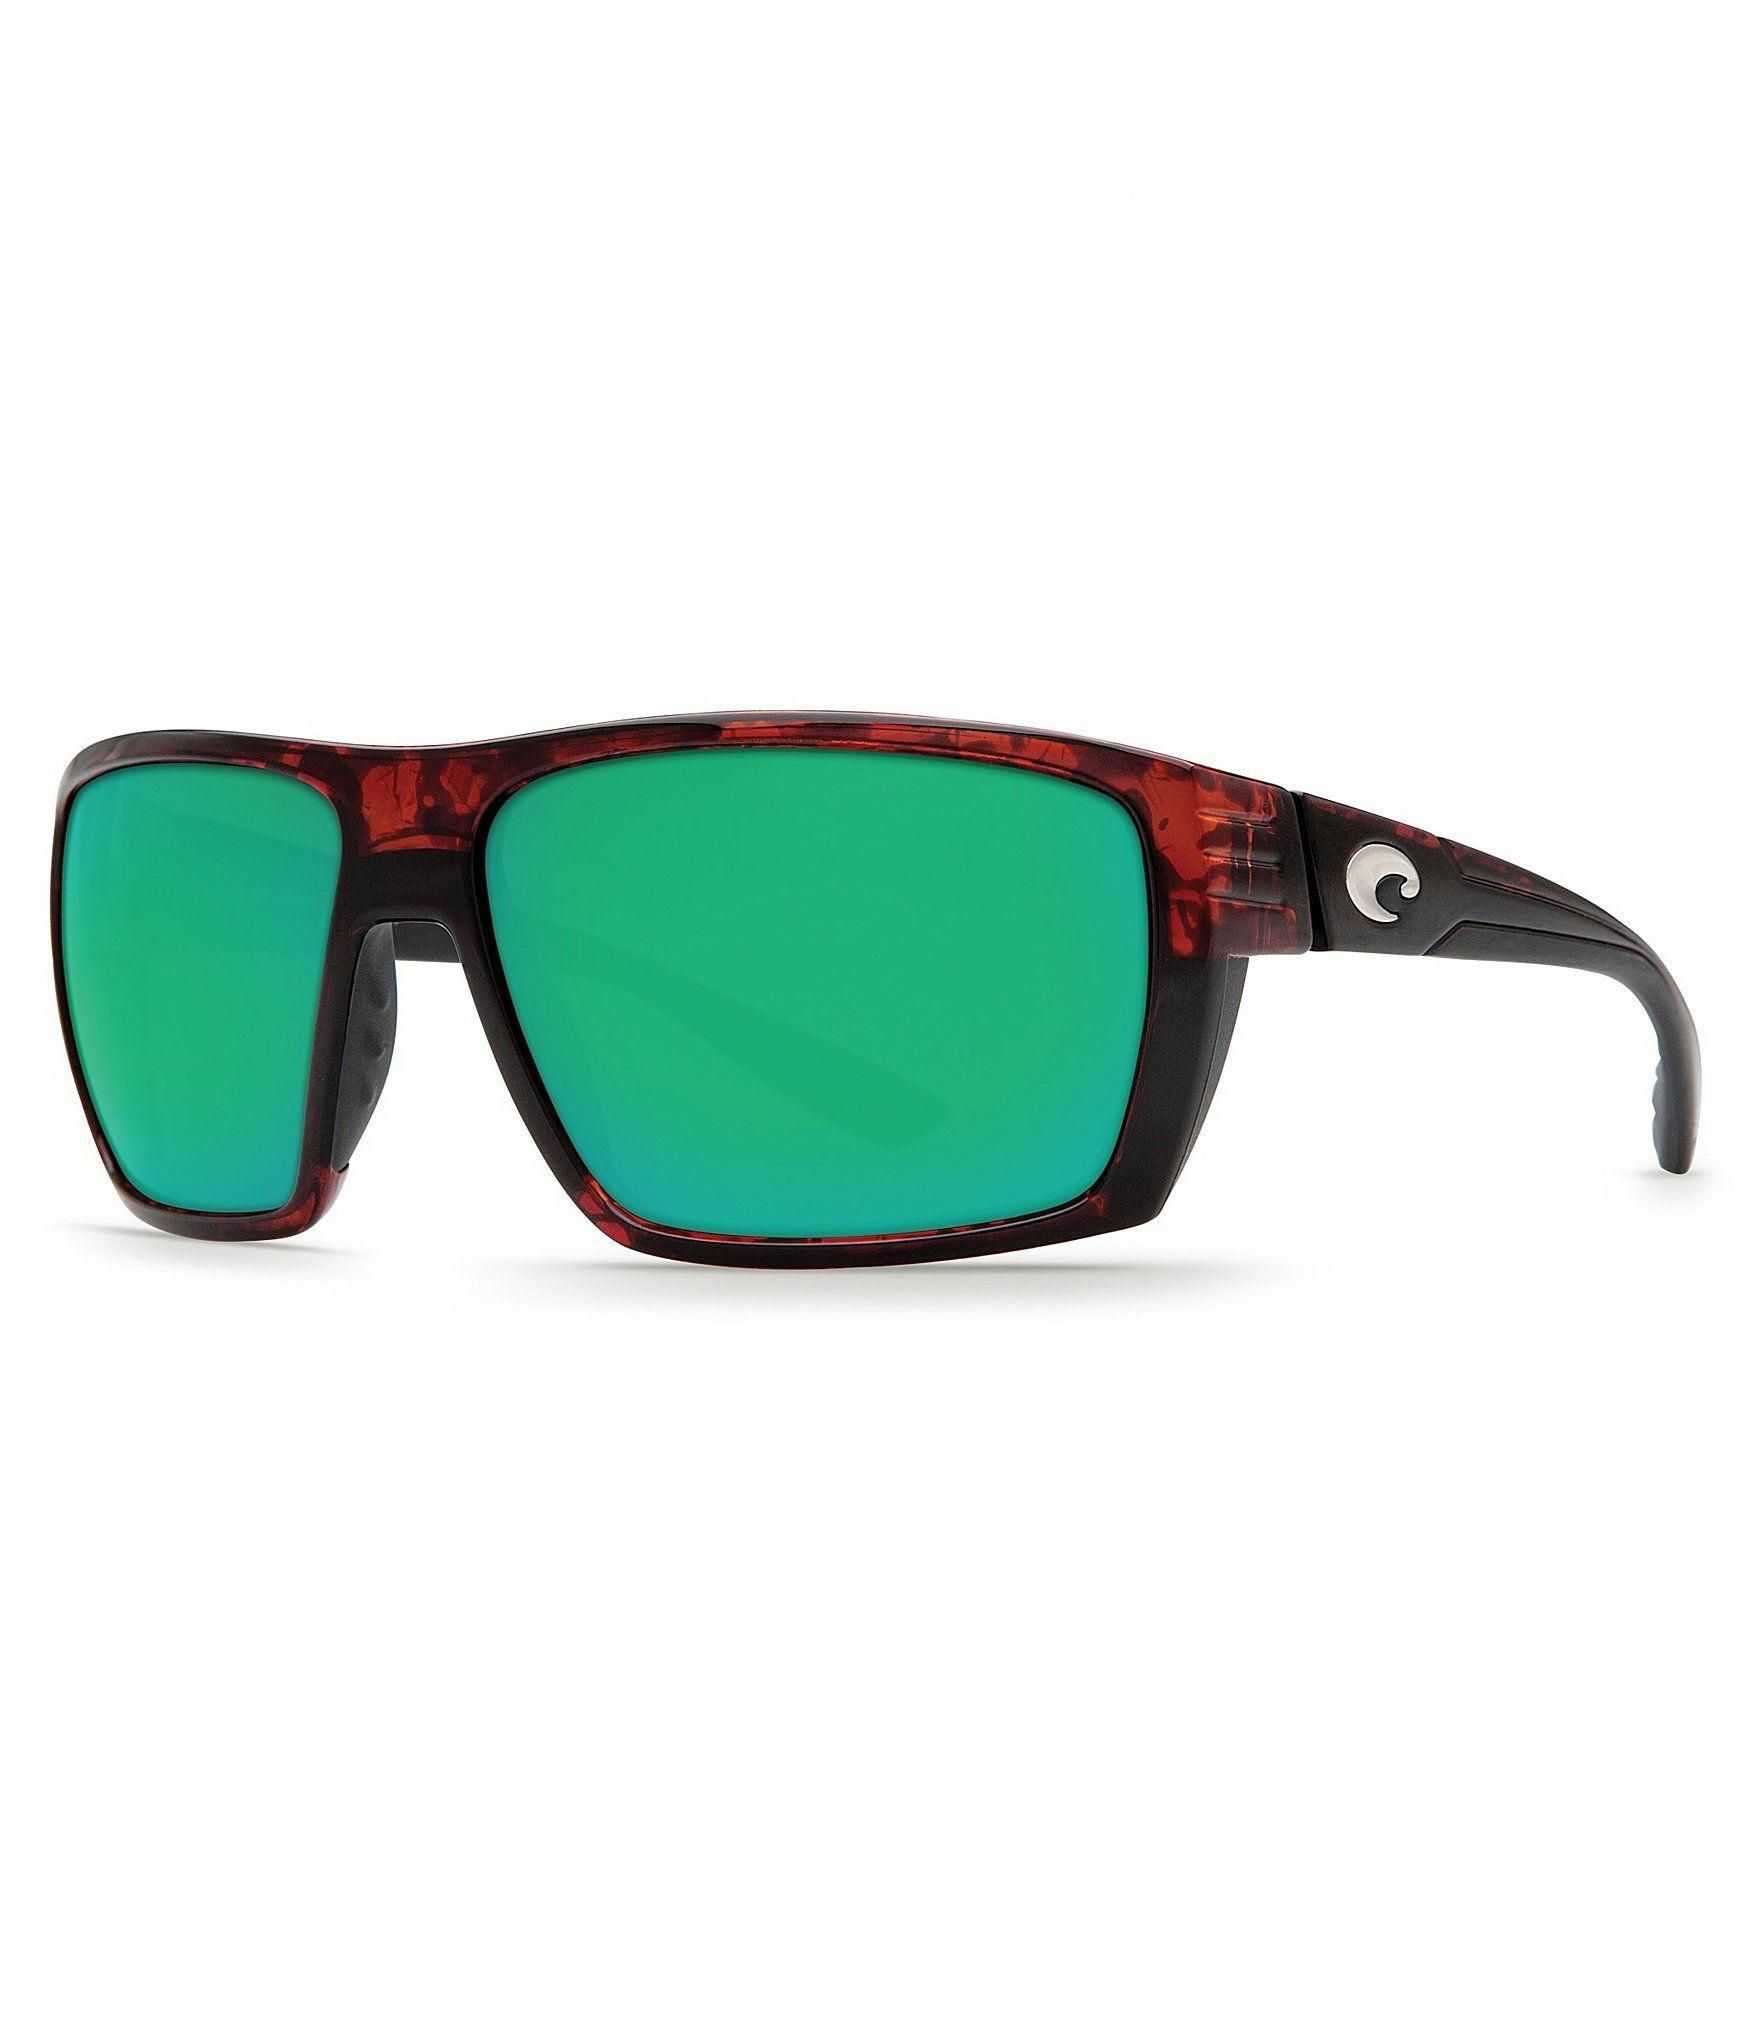 16 finest fishing sunglasses polarized for men with